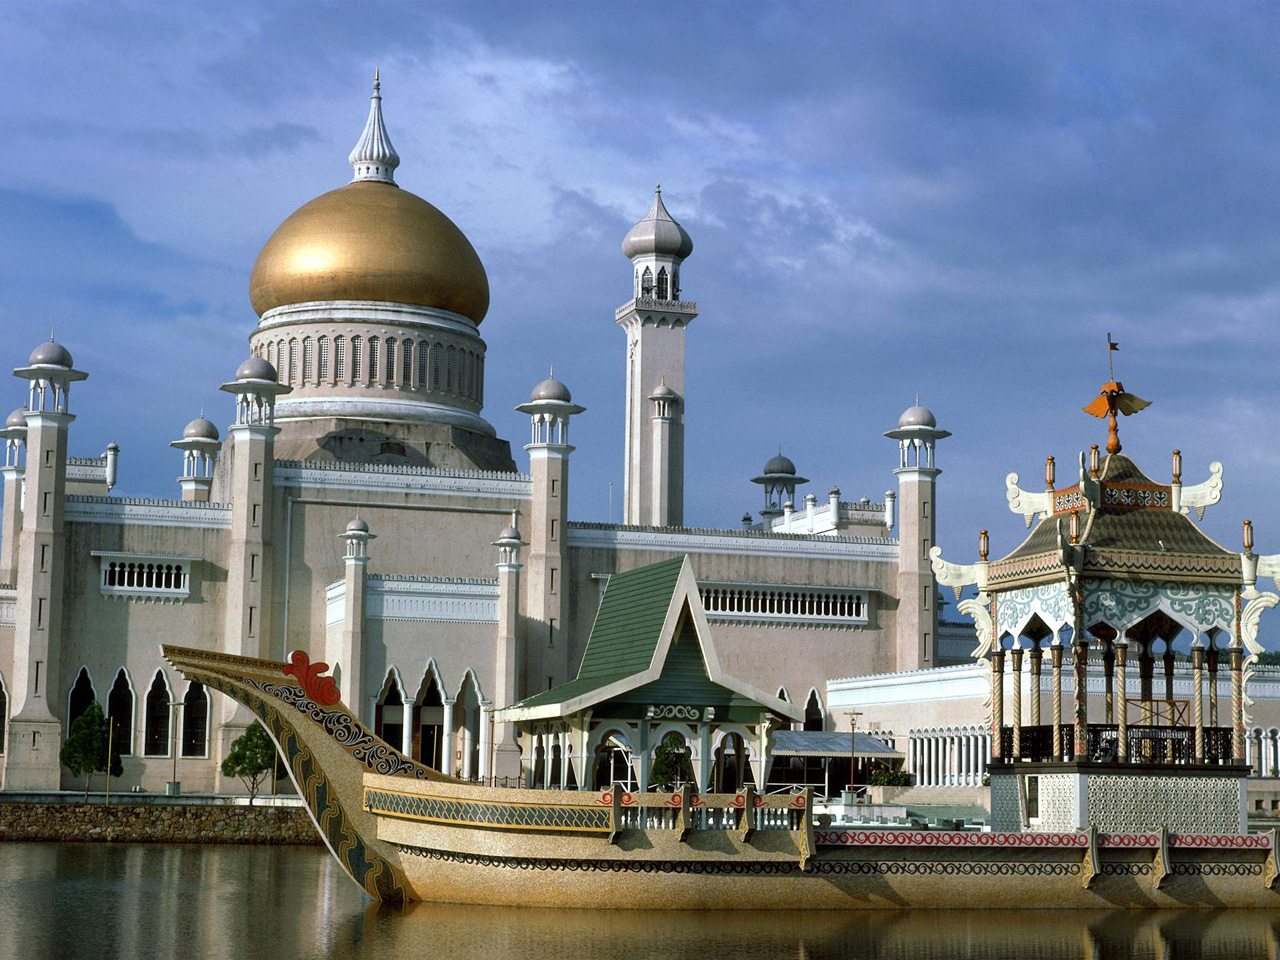 HD Wallpapers: Beautiful Mosques of the World Wallpapers